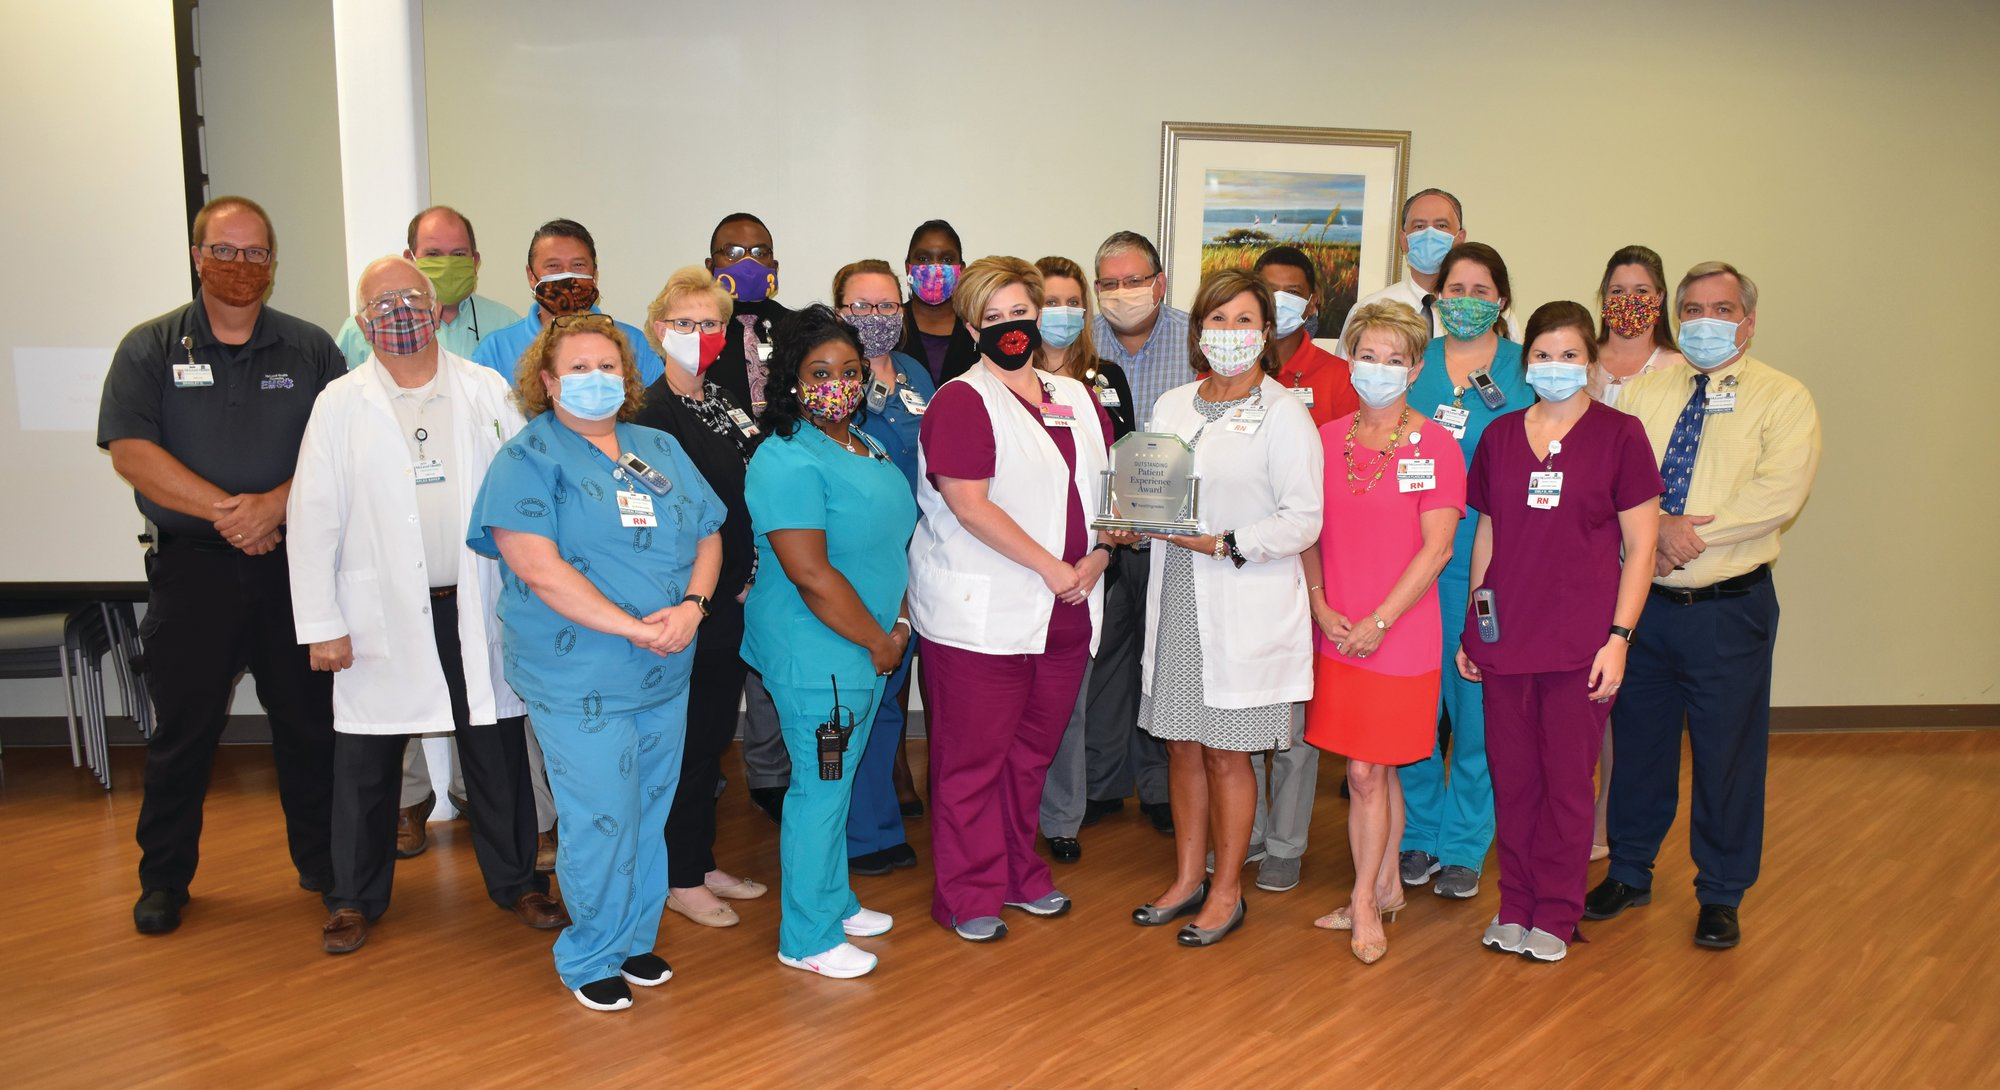 PHOTO PROVIDED  Several of McLeod Health Clarendon's front line staff members and directors are seen with the 2020 Outstanding Patient Experience Award that was given to the hospital on June 6. The award recognized only 424 hospitals across the nation for their outstanding patient experiences.